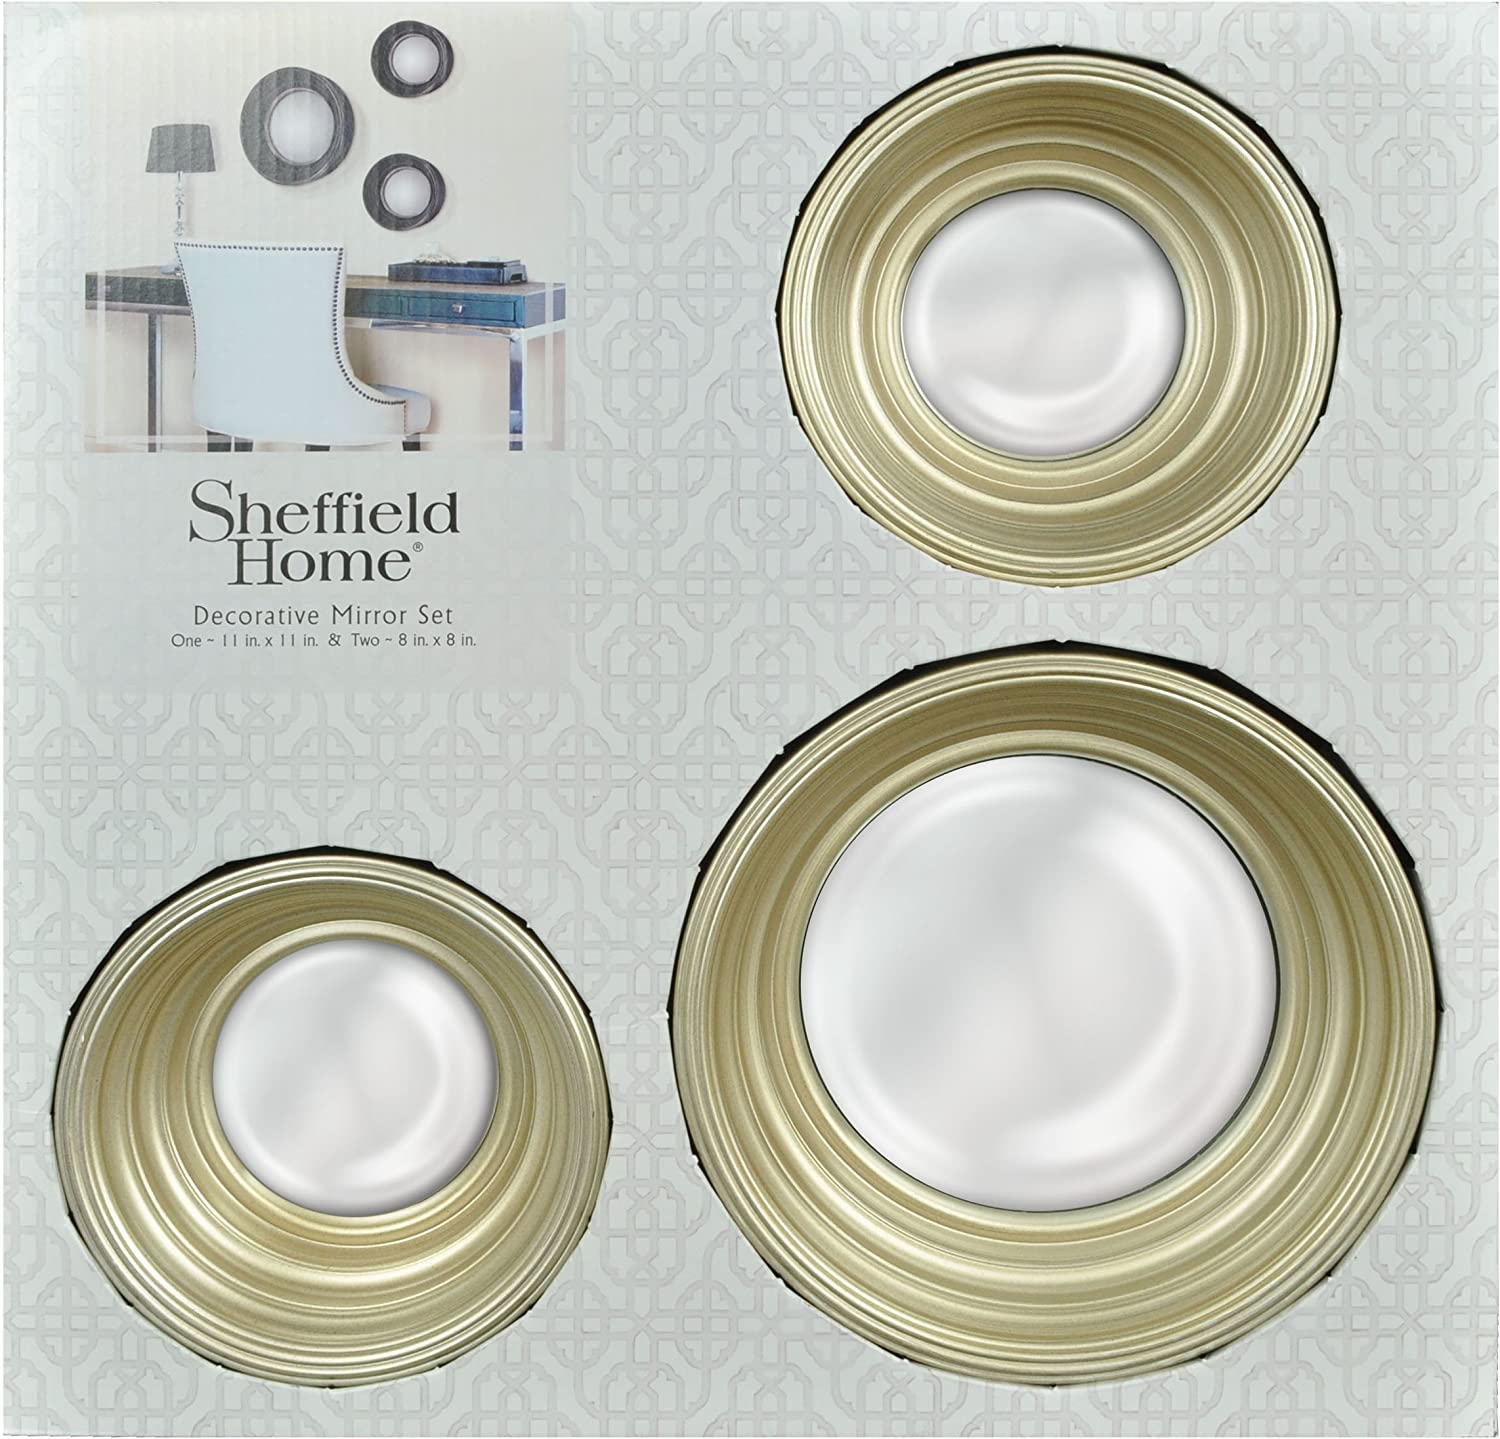 Framed Round Wall Mirrors Set Of 3 Champagne Amazon Co Uk Kitchen Home